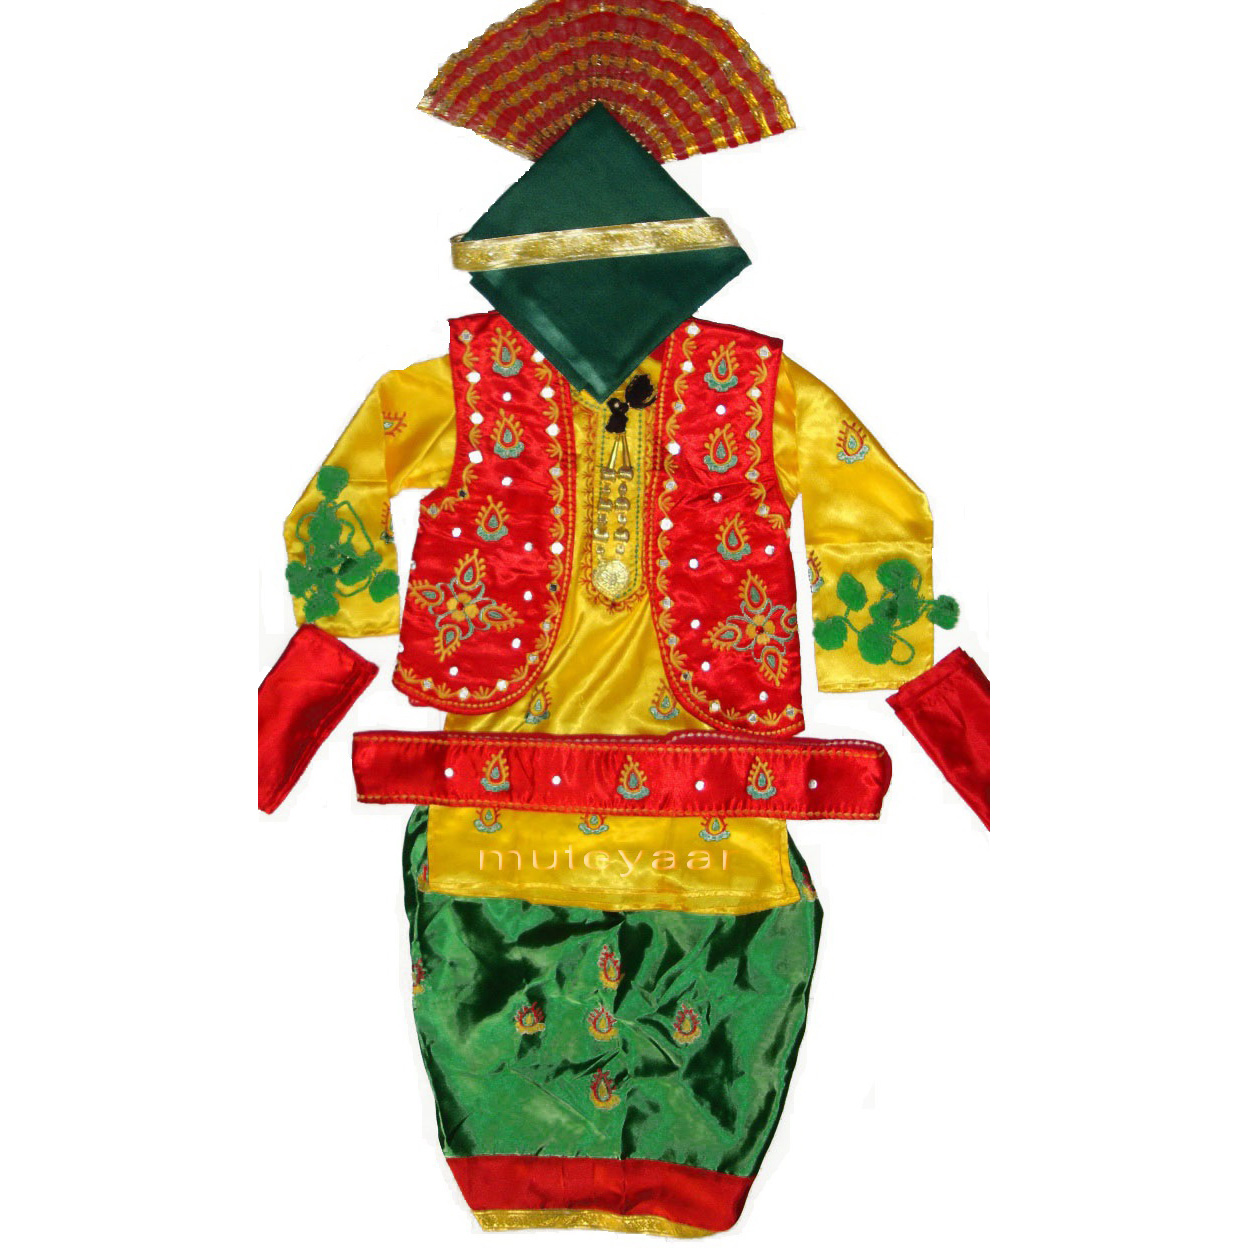 3D colorful Bhangra dance Costume / outfit dress- ready to wear 1